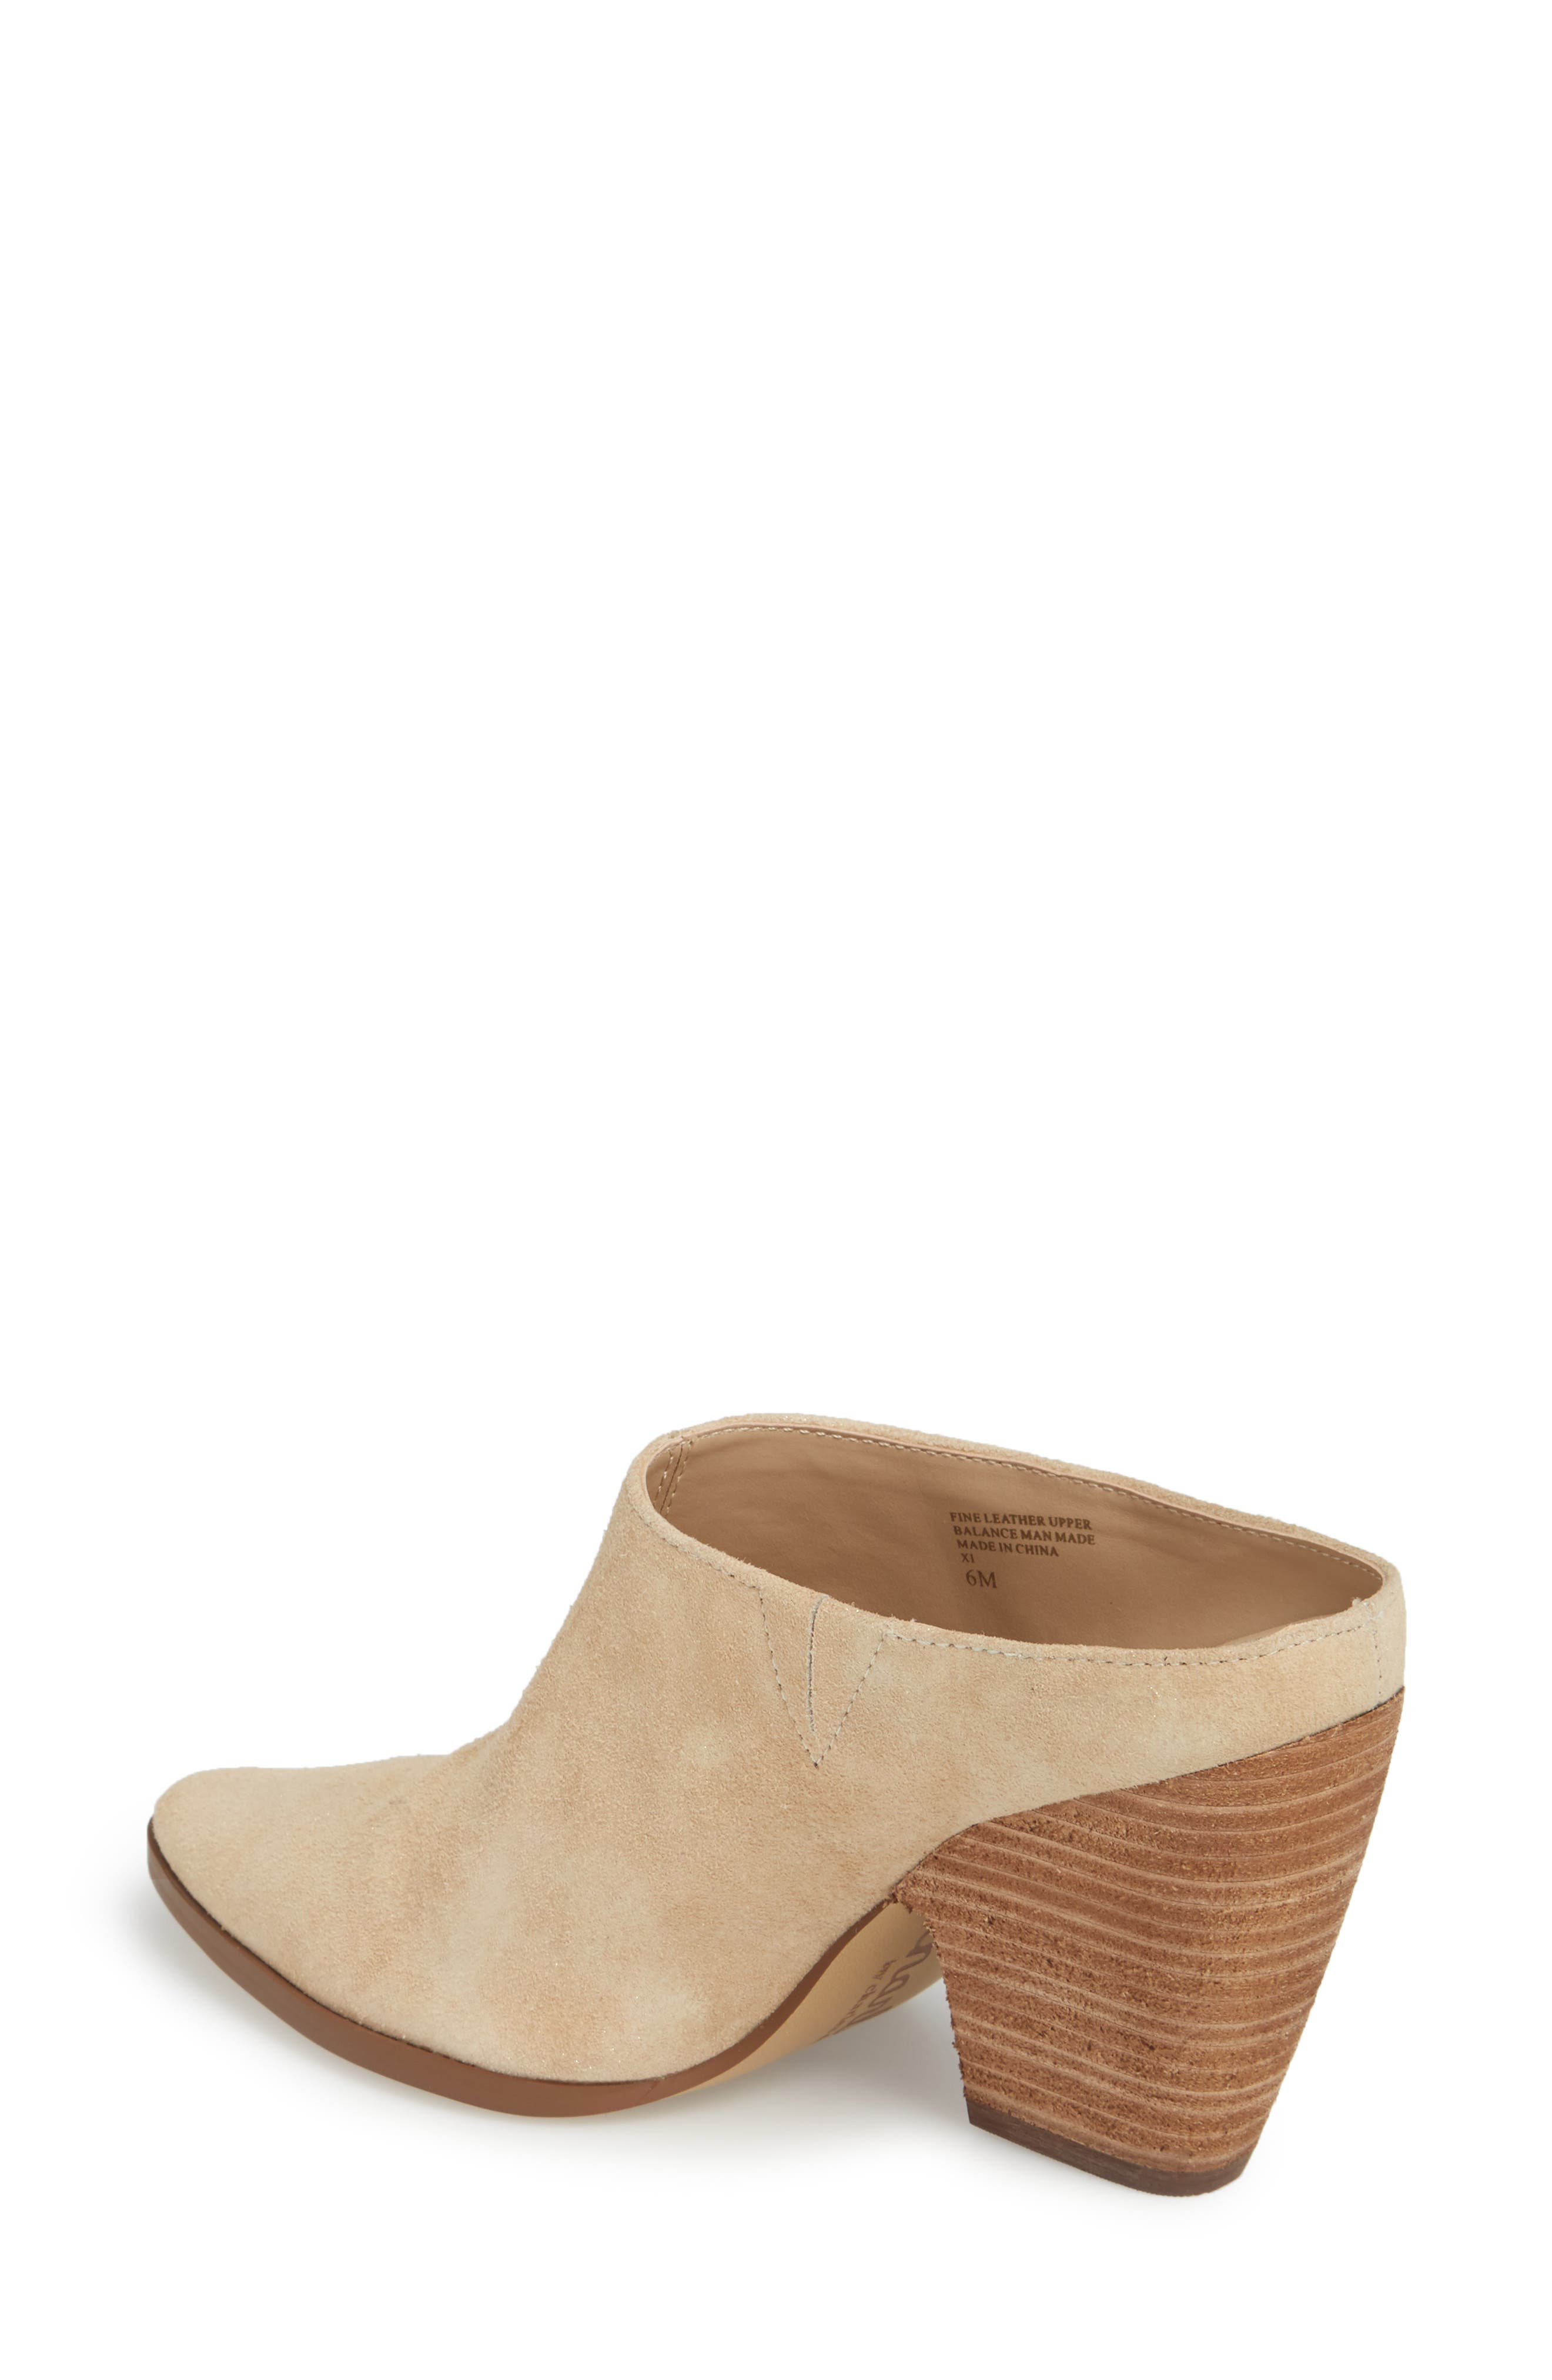 CHARLES BY CHARLES DAVID, Nico Mule, Alternate thumbnail 2, color, NUDE LIGHT GOLD SUEDE